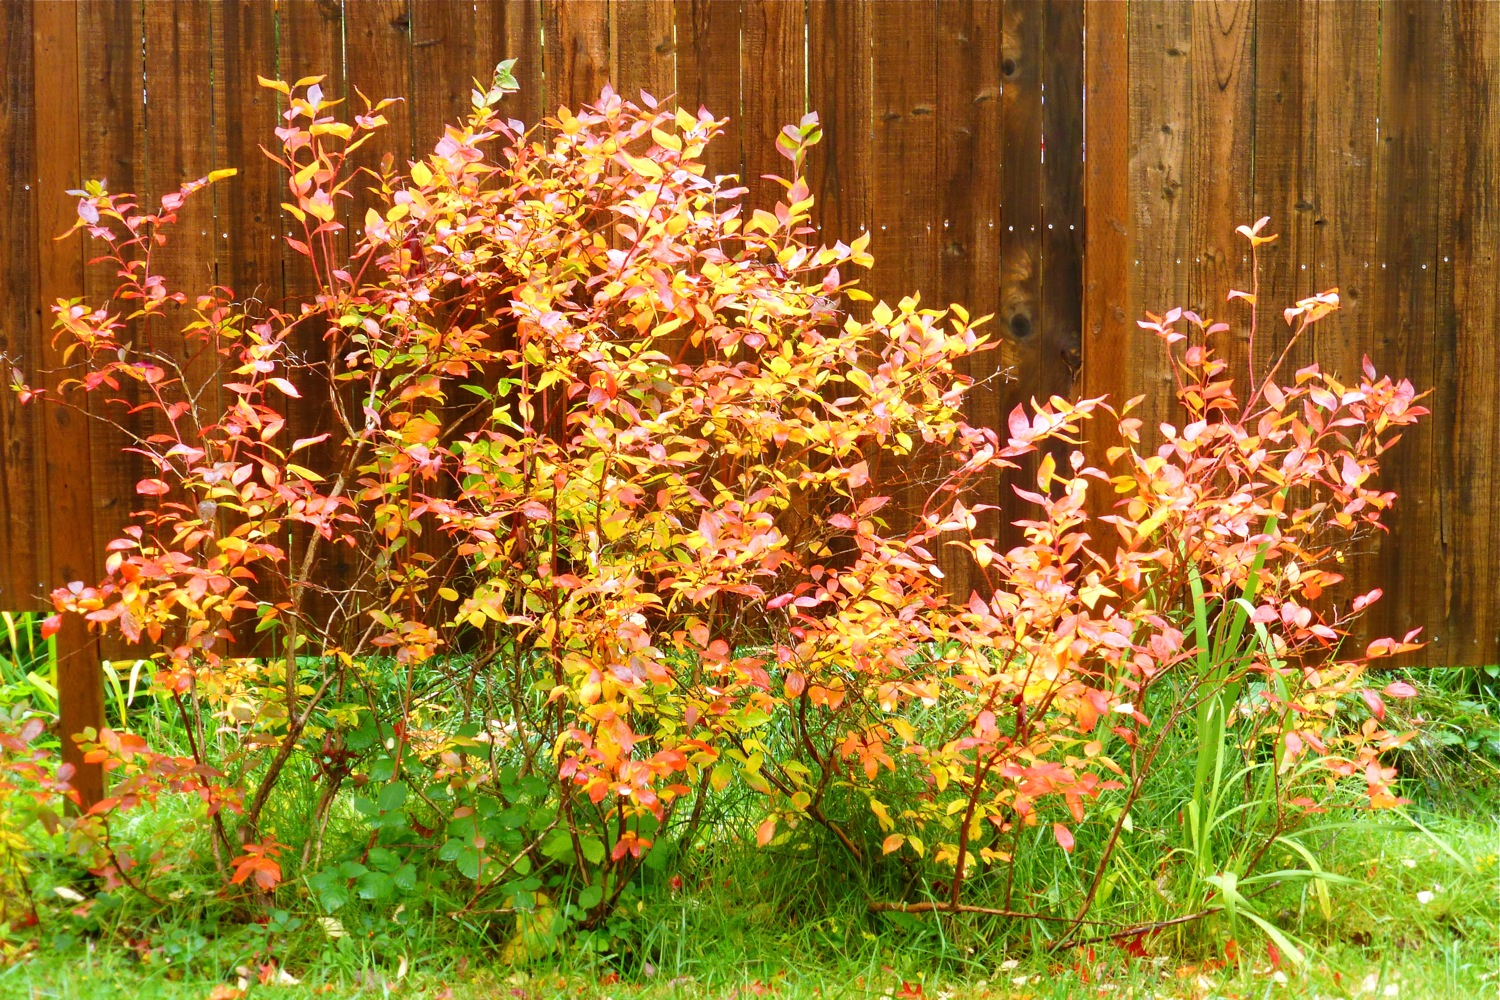 autumn garden, blueberries in autumn, autumn blueberry bushes